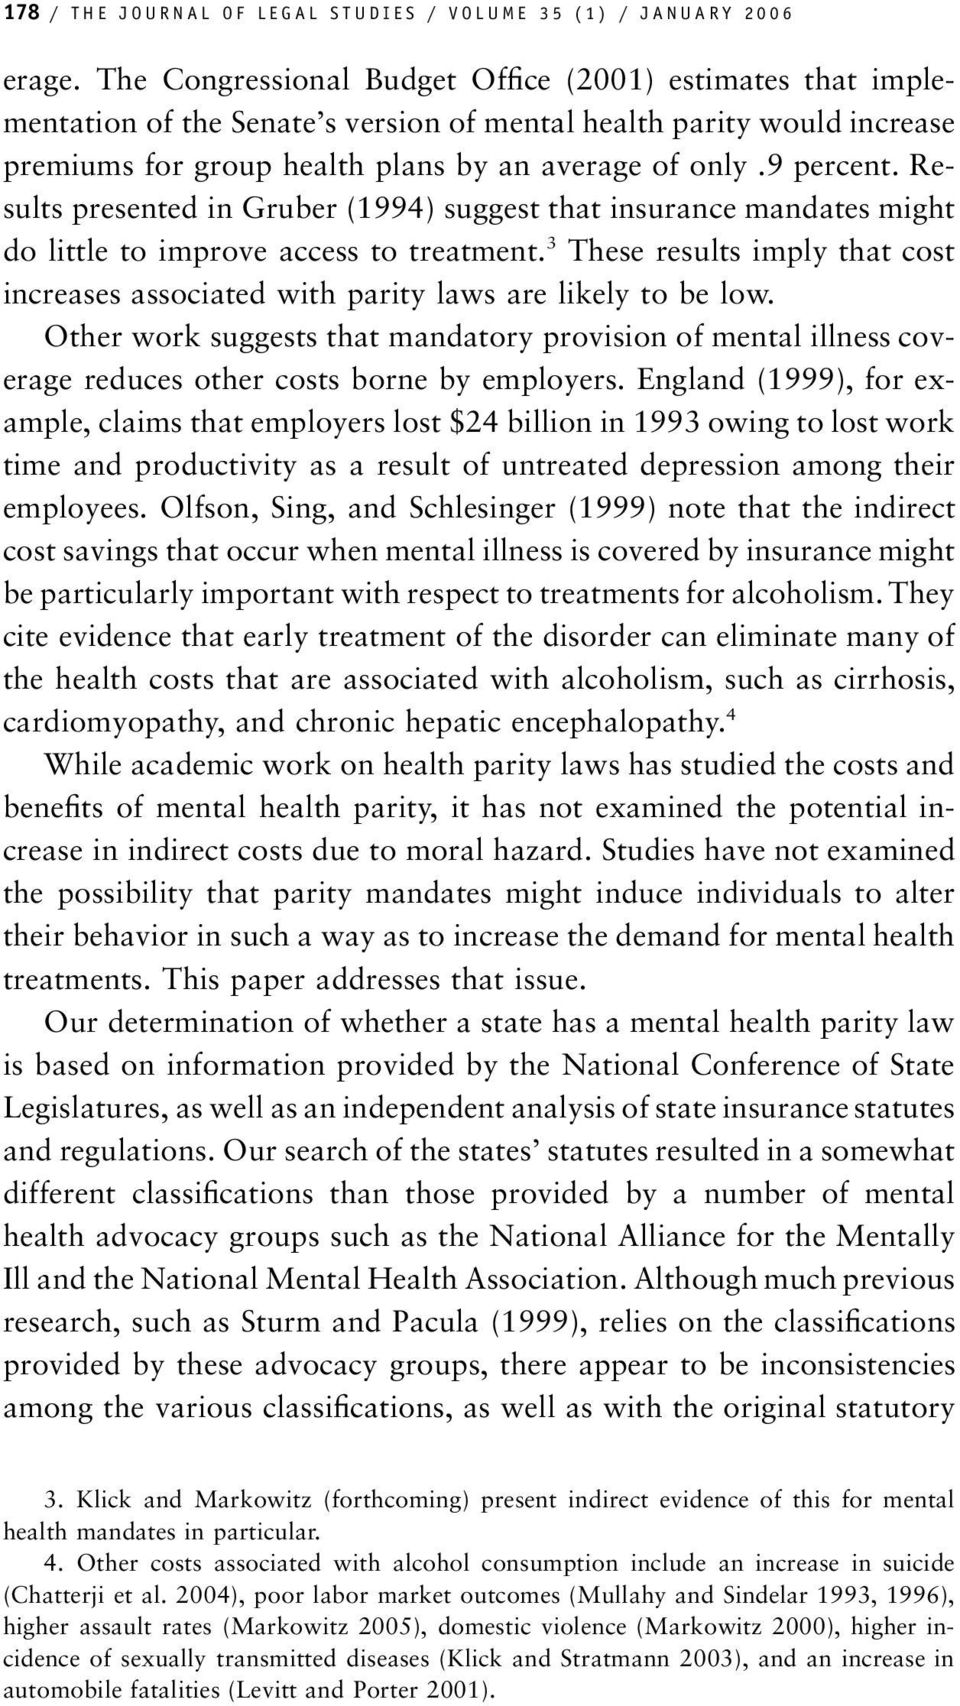 Results presented in Gruber (1994) suggest that insurance mandates might do little to improve access to treatment.